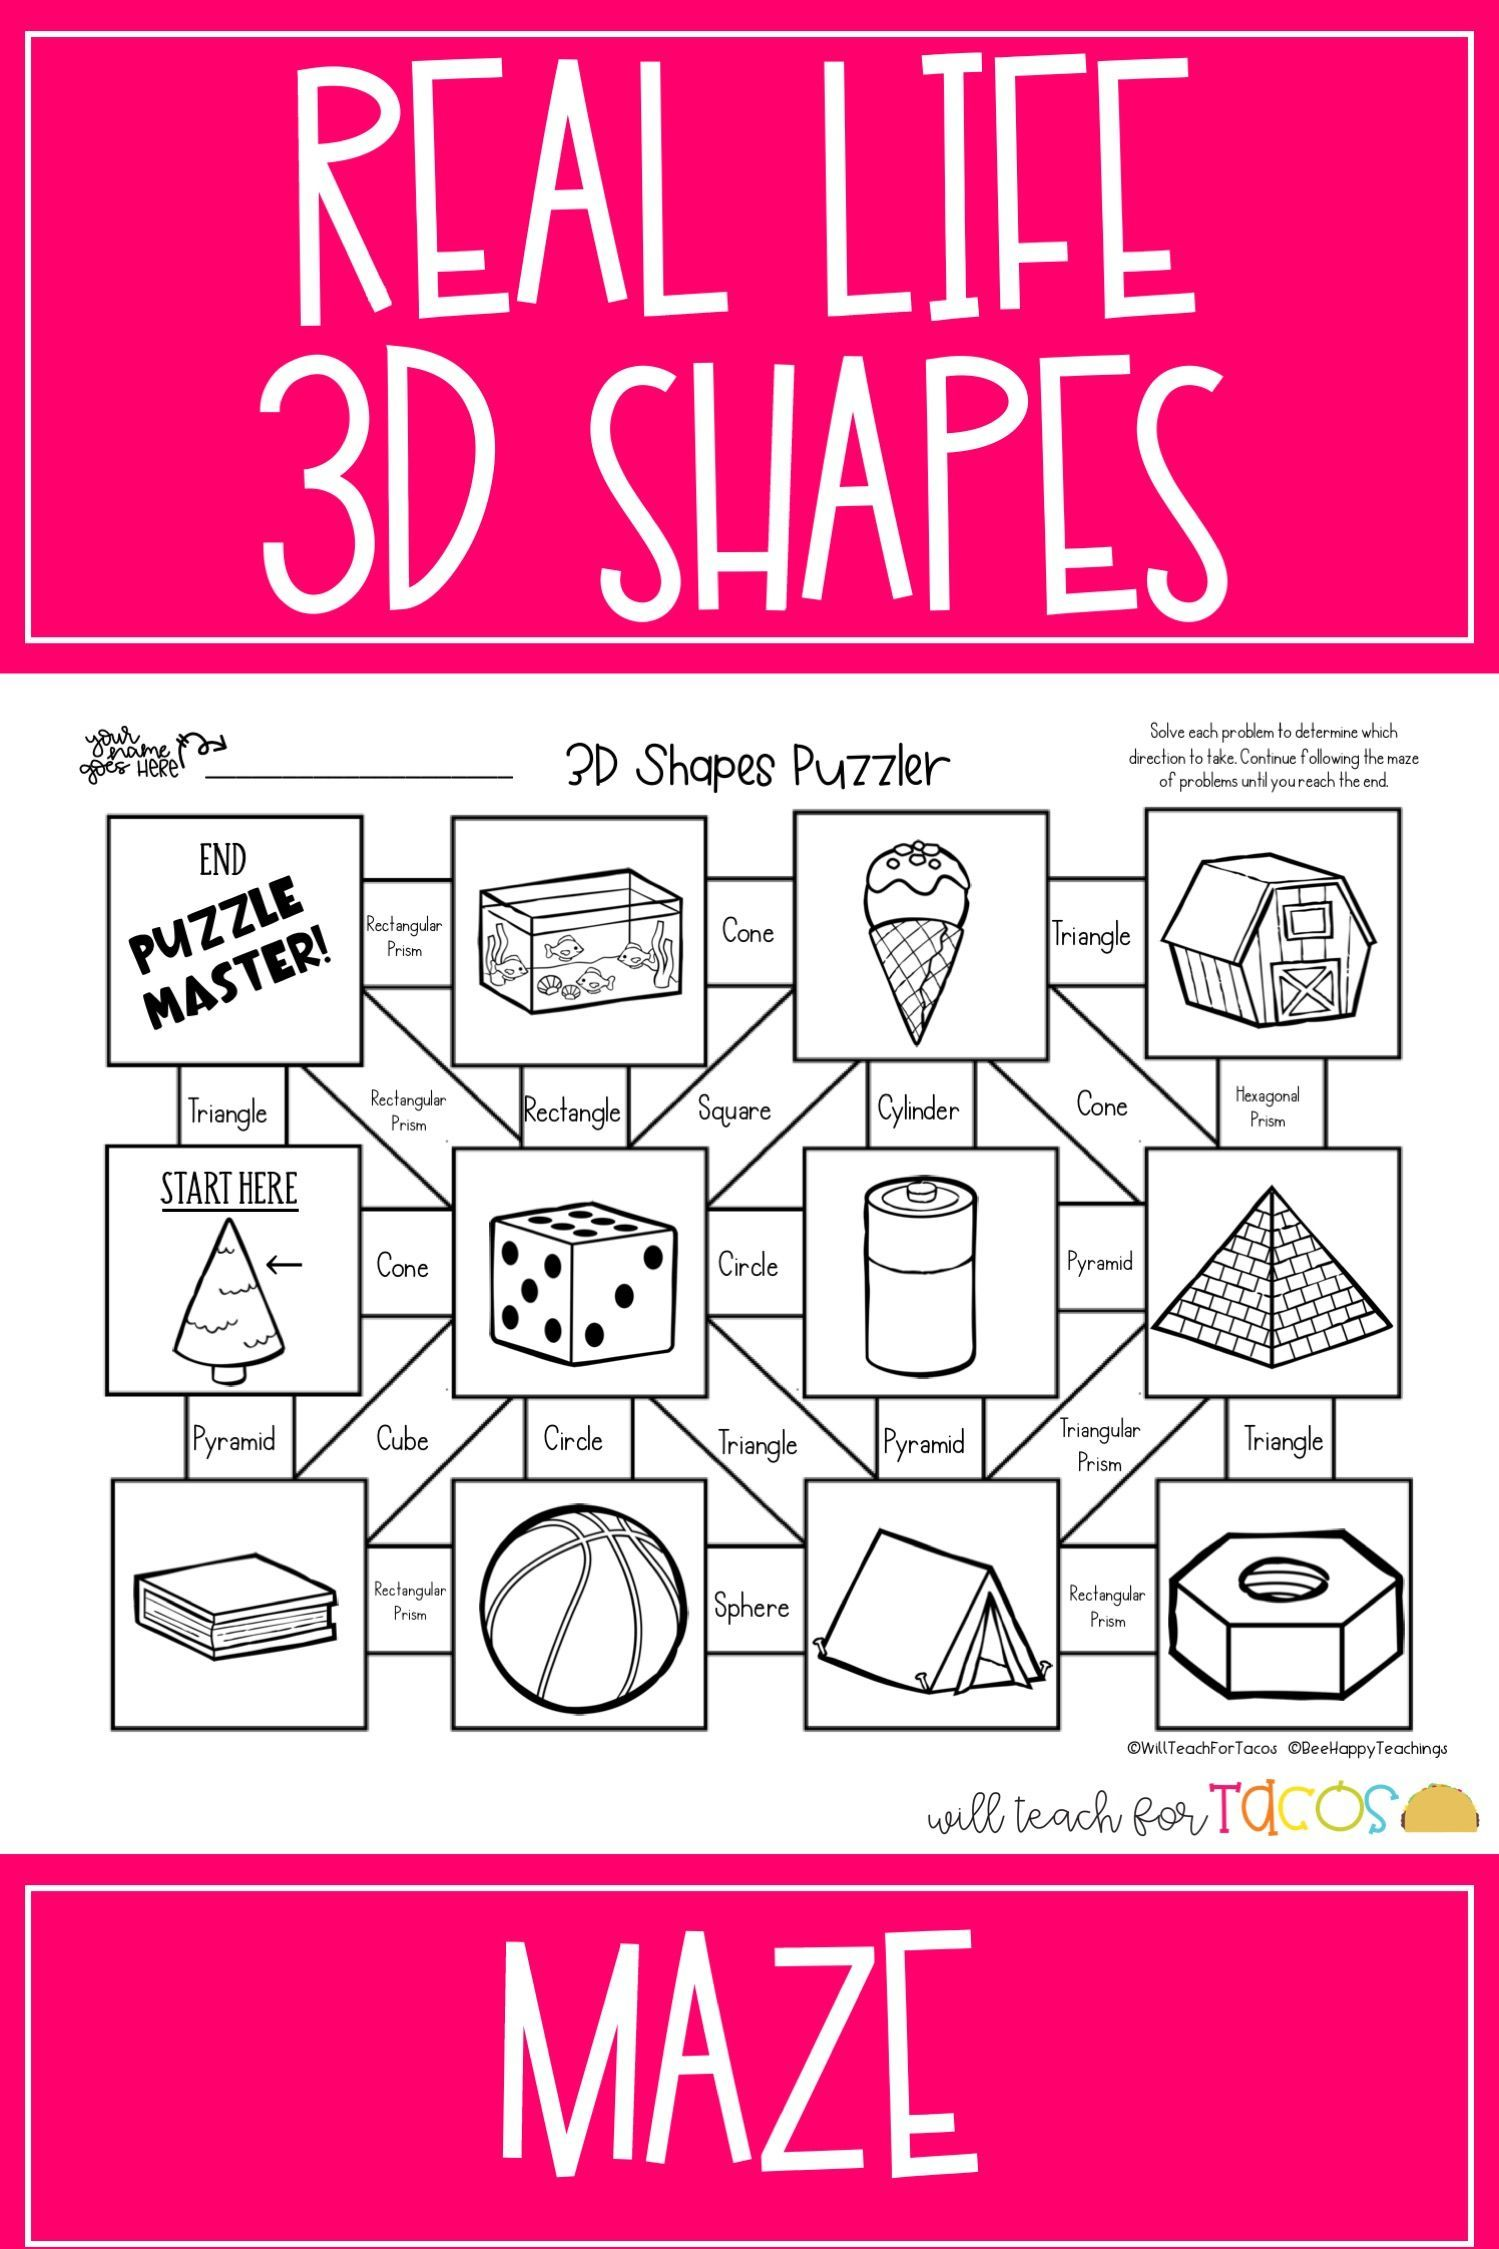 medium resolution of classifying 3D shapes with real life objects; maze for 3rd grade    Elementary math games